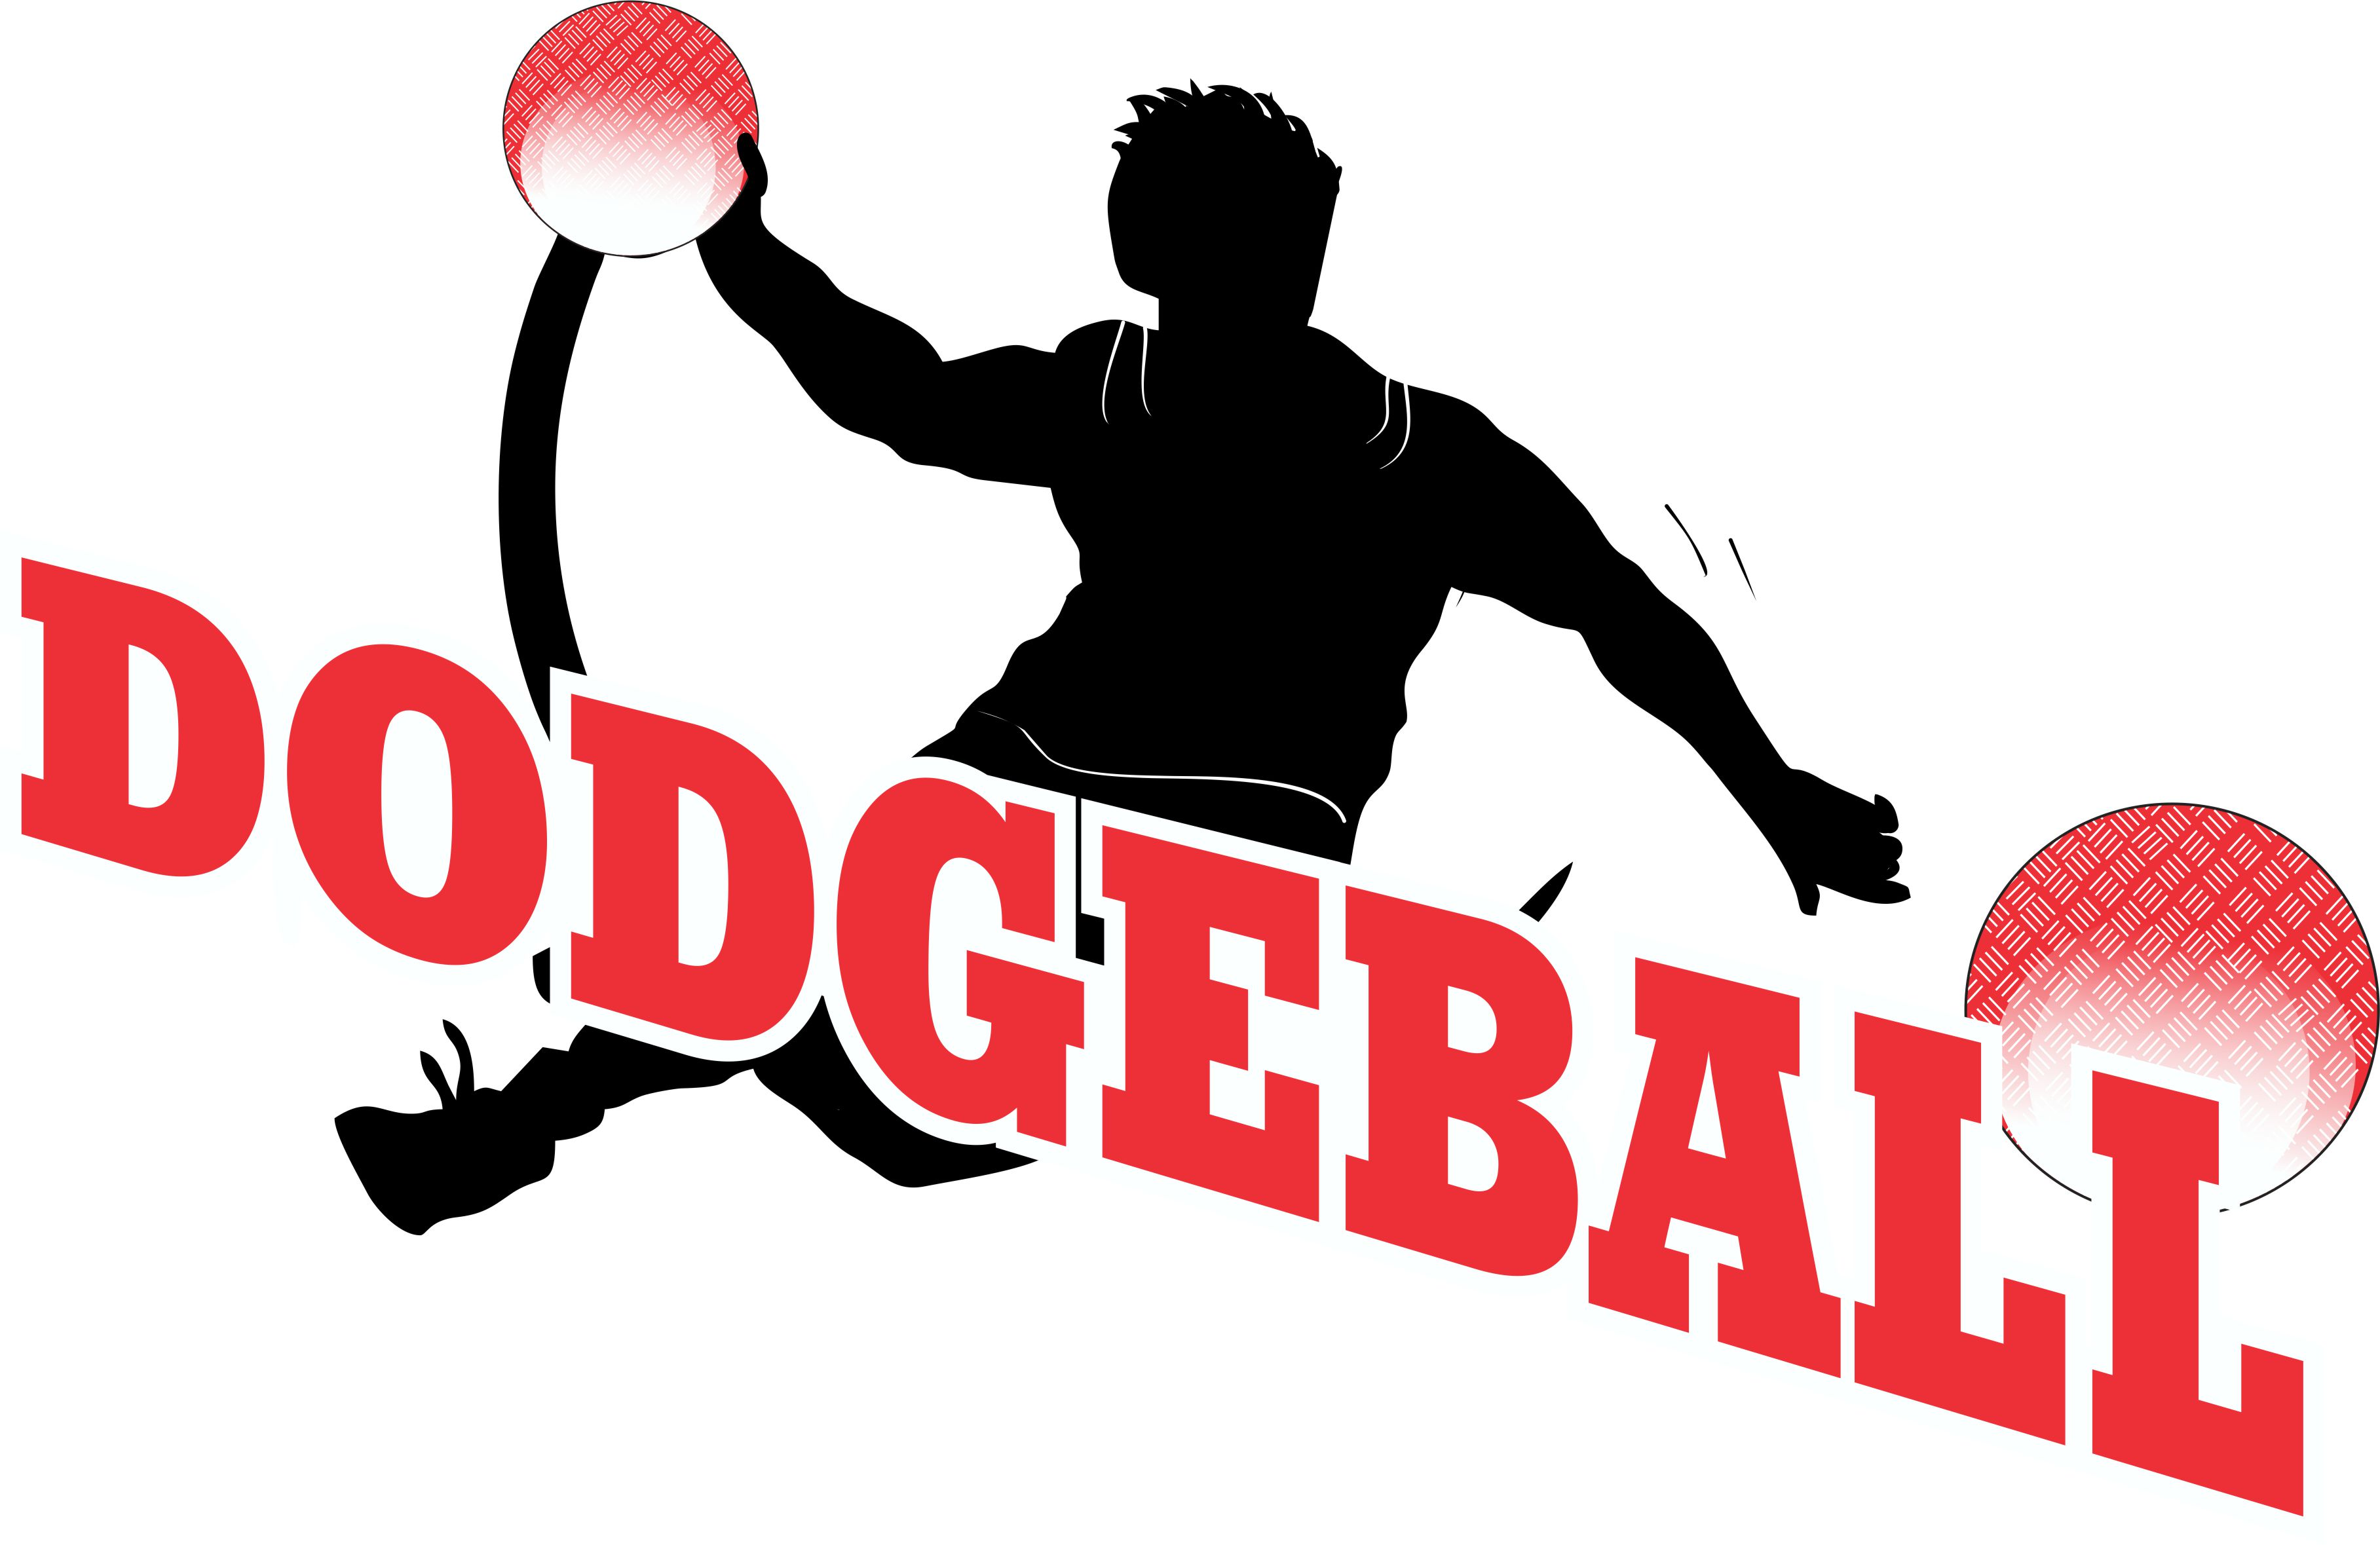 Dodge clipart dodgeball player You dodgeball! playing town you